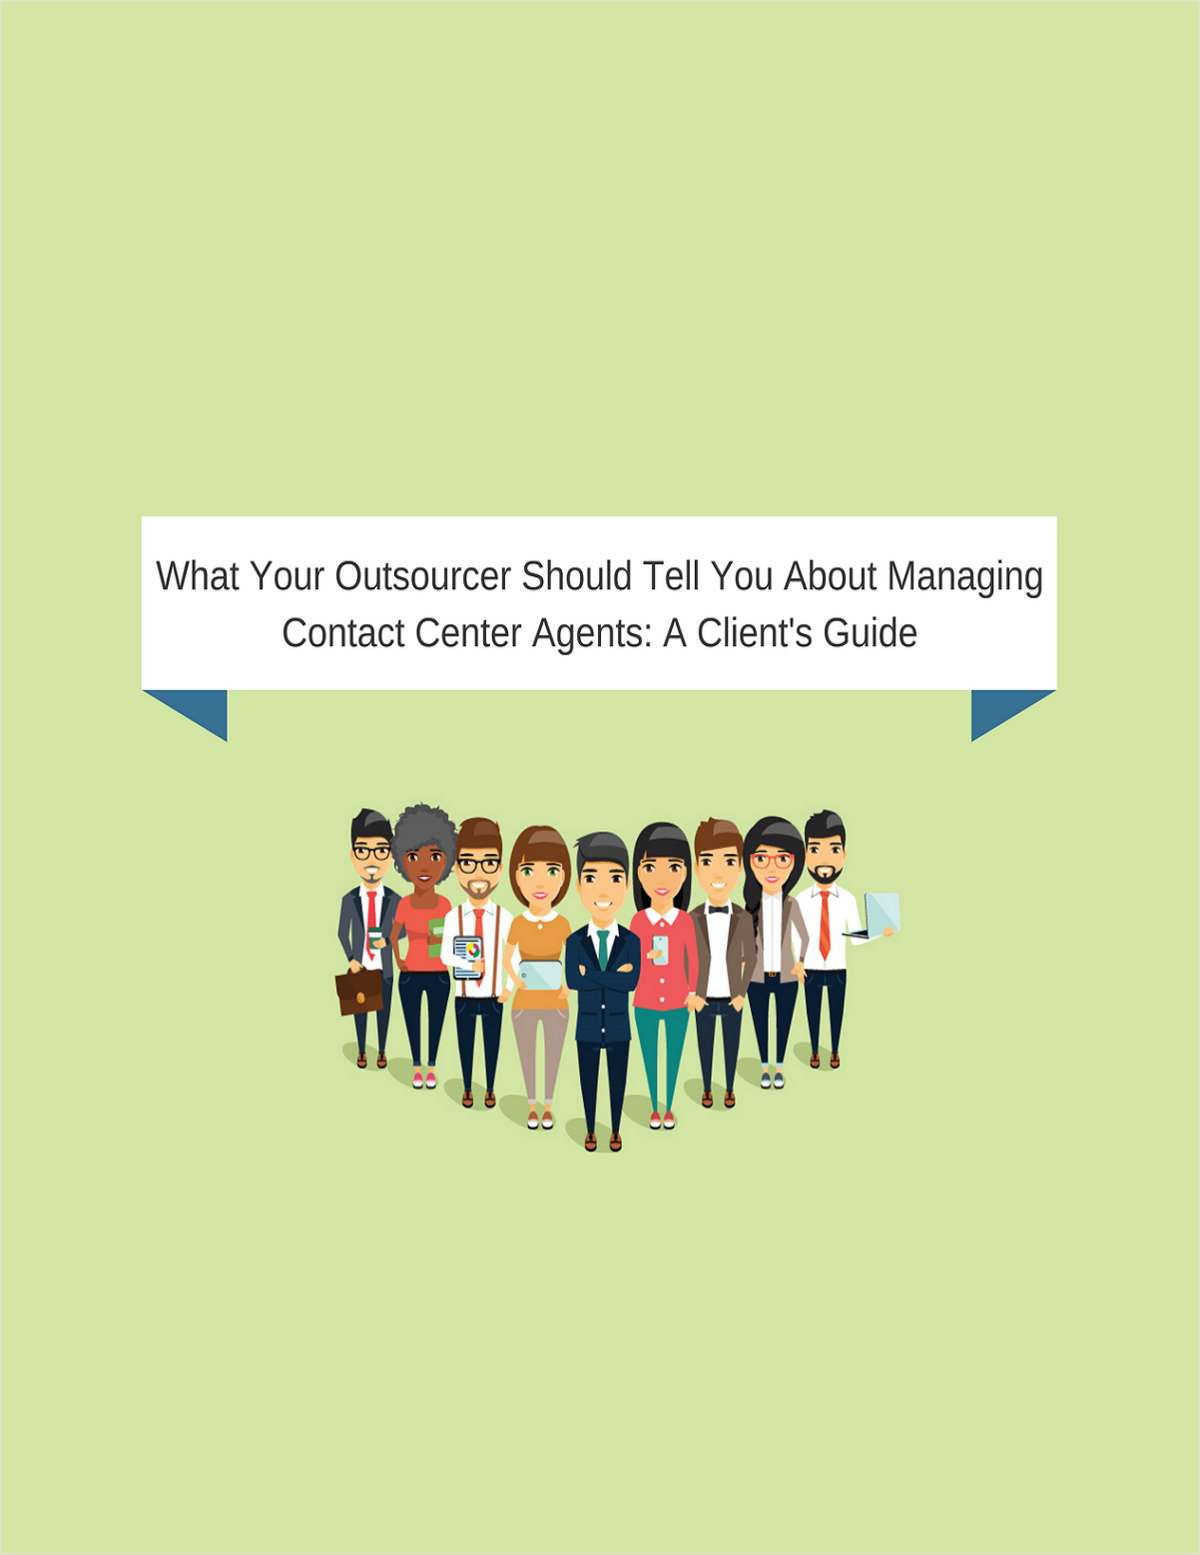 What Your Outsourcer Should Tell You About Managing Contact Center Agents: A Client's Guide